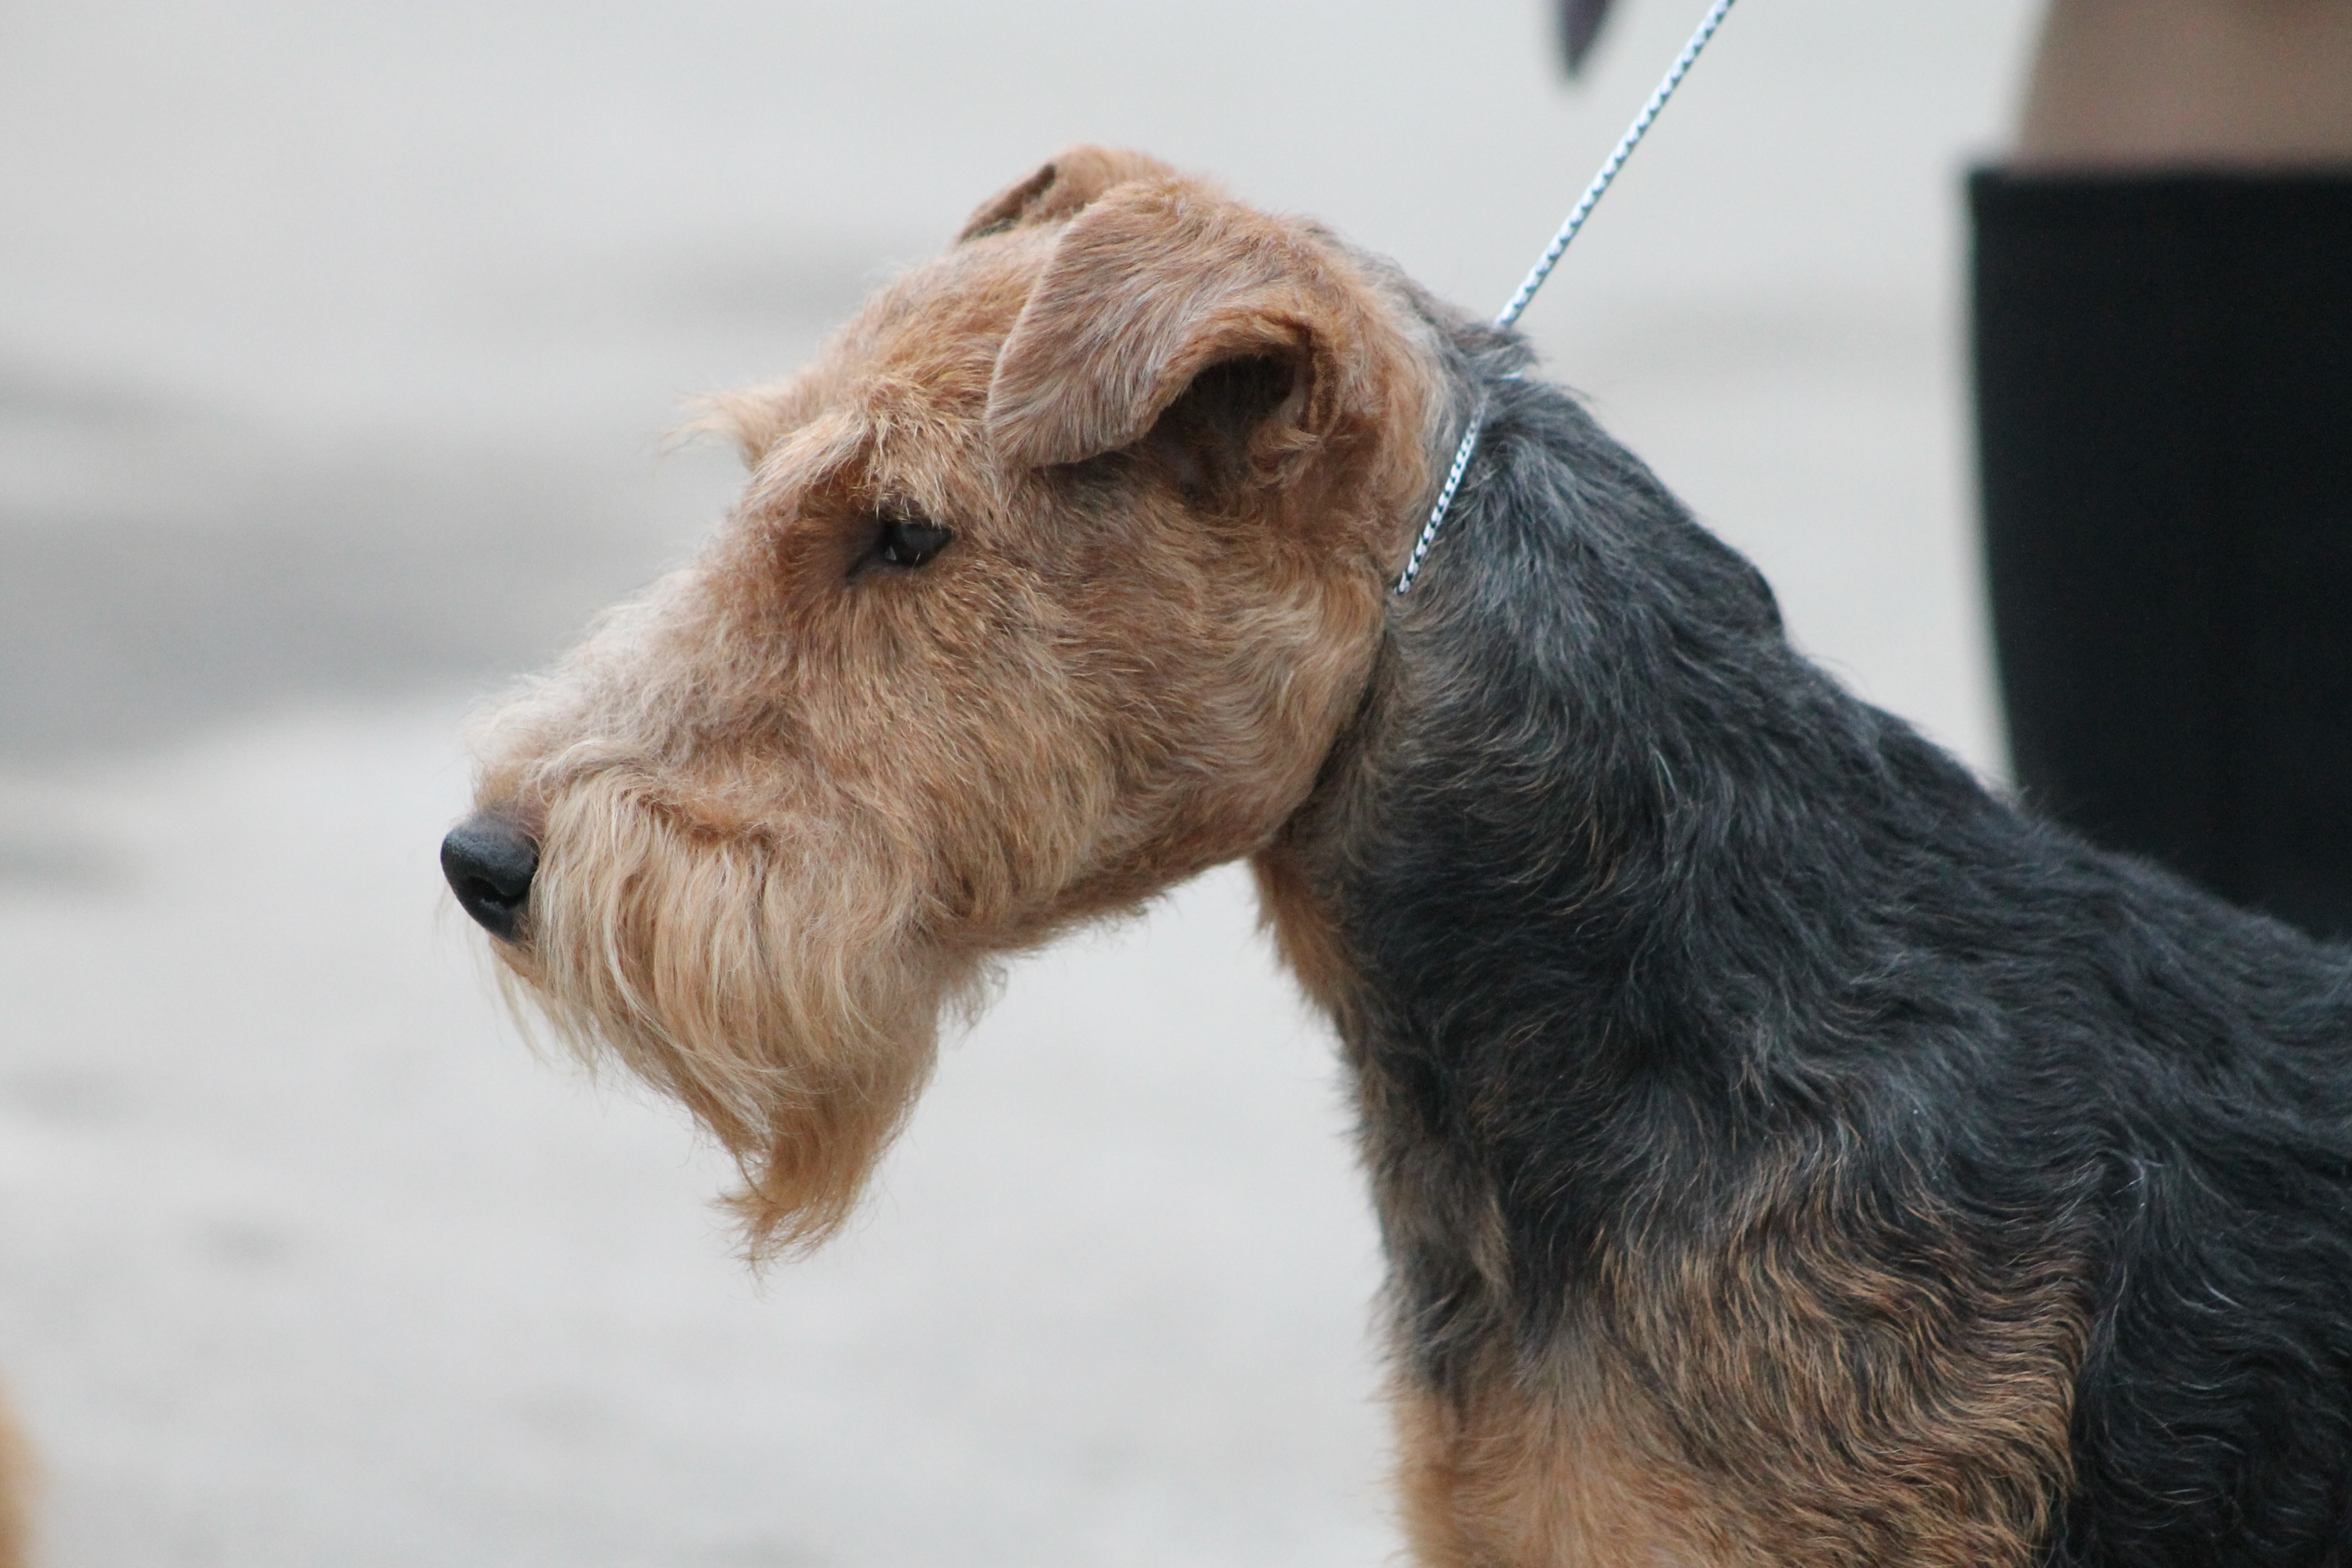 Make sure this fits by entering your model number The Airedale Terrier is one pretty pup If you want to lavish those looks make sure you have them spend